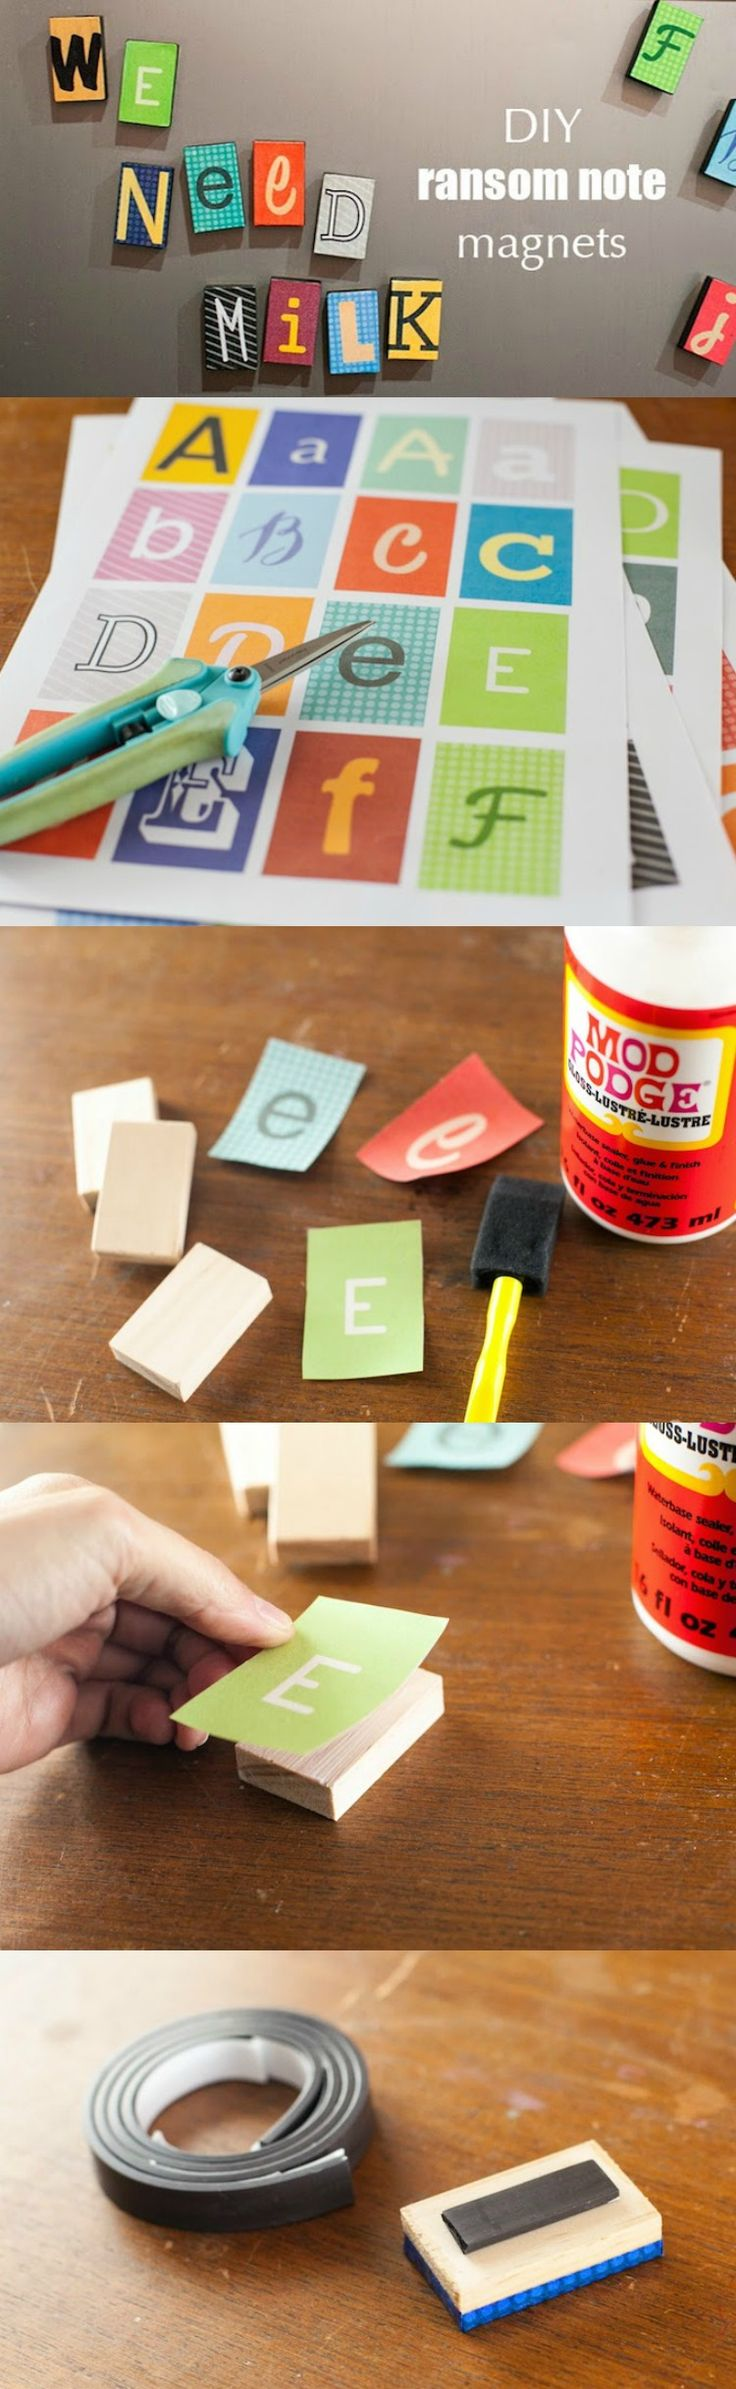 Buy magnets for crafts - These Diy Magnets Are So Easy And The Ransom Note Font Makes Them